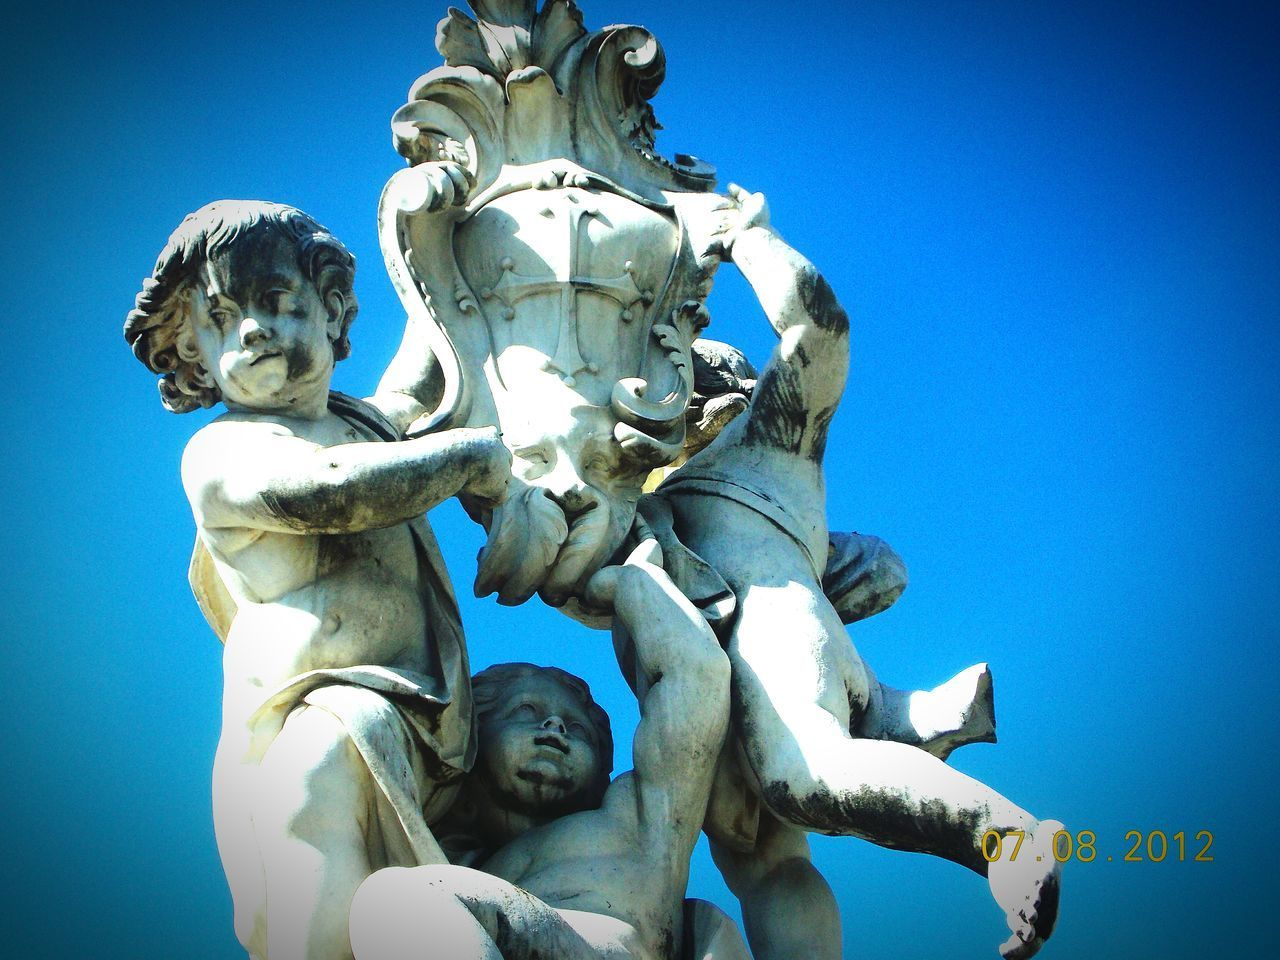 Monumentos children Statue Sculpture Human Representation Blue Low Angle View No People Clear Sky Religion Sky Outdoors Day Astrology Sign Representing Close-up